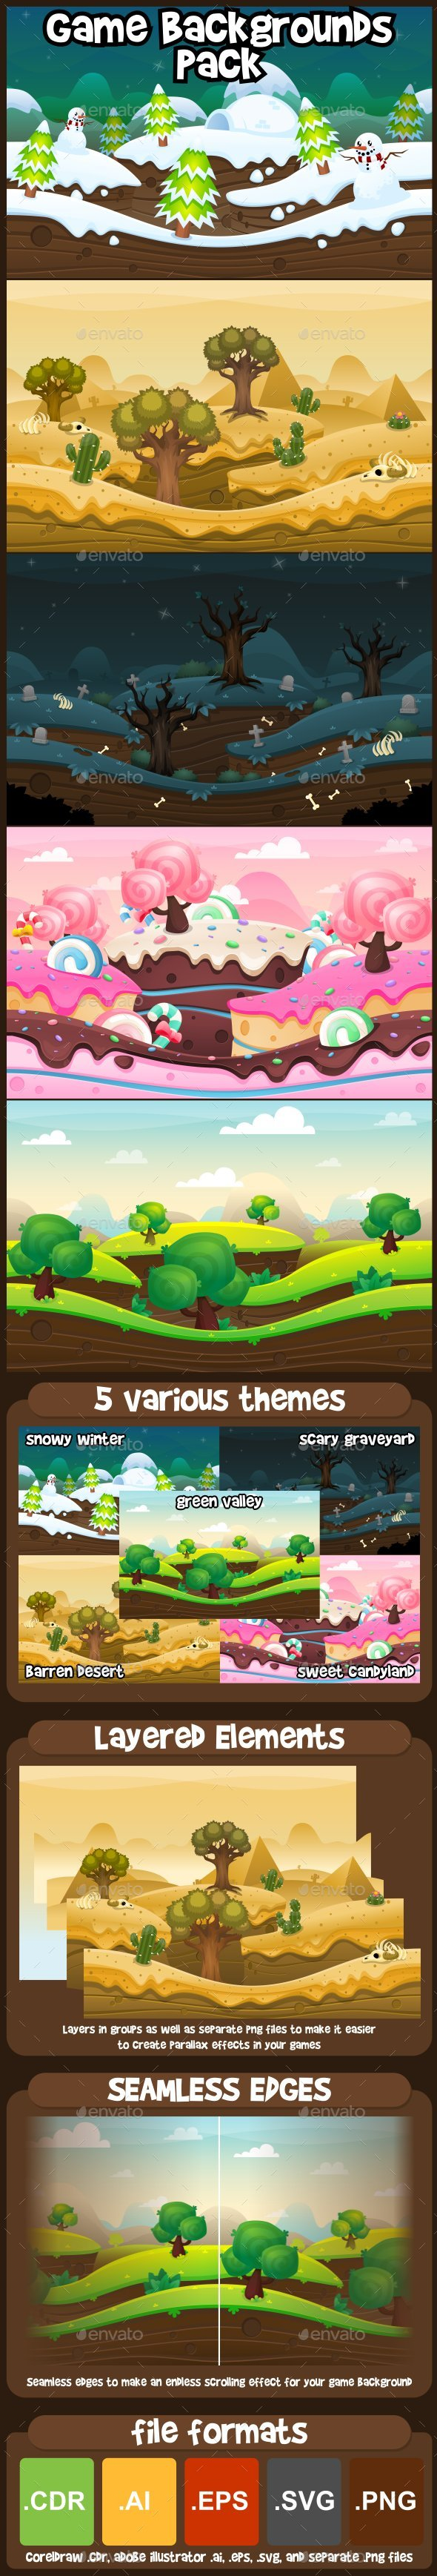 GraphicRiver Game Backgrounds Pack 21195927